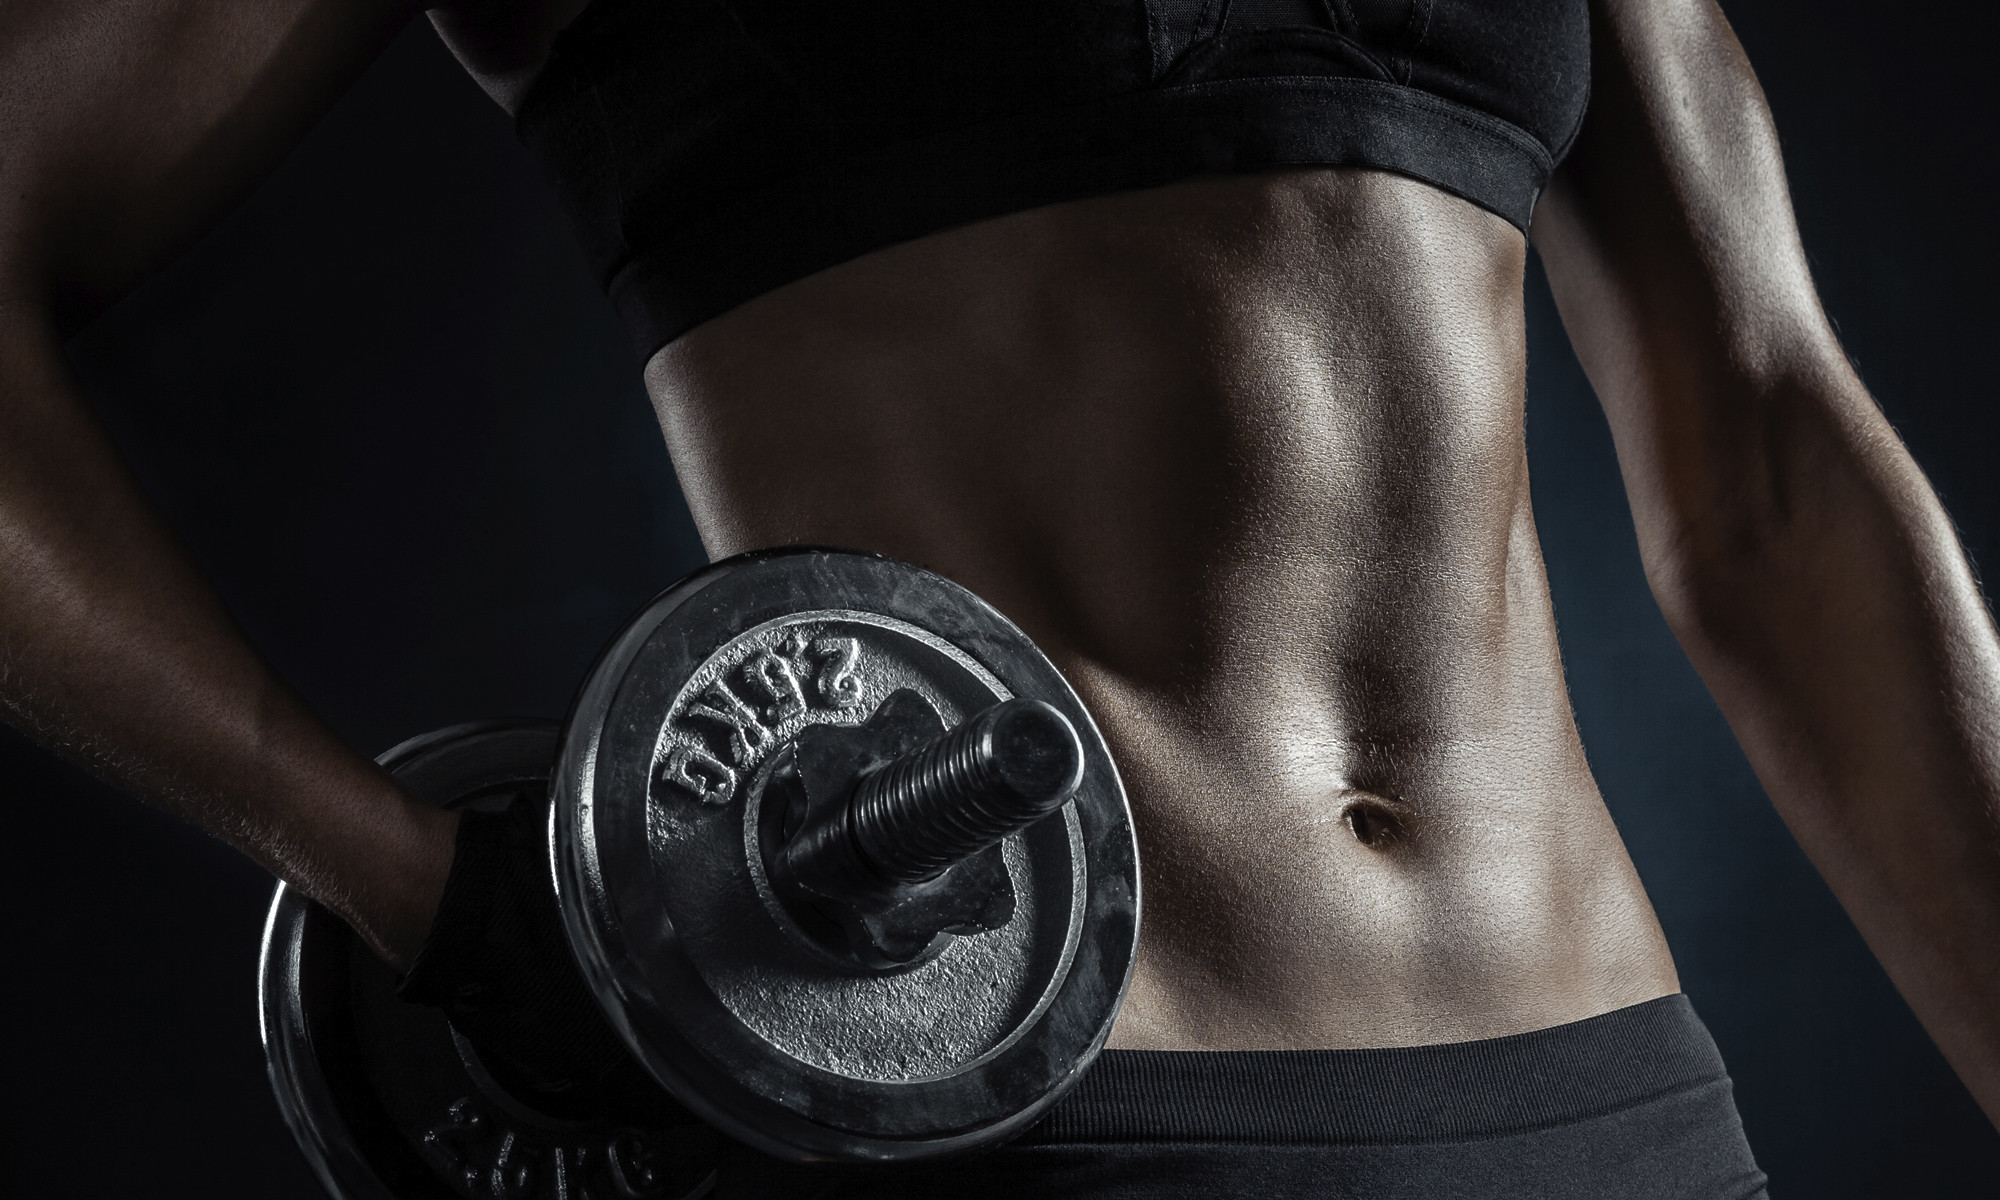 Wallpapers Fitness Group (73 )